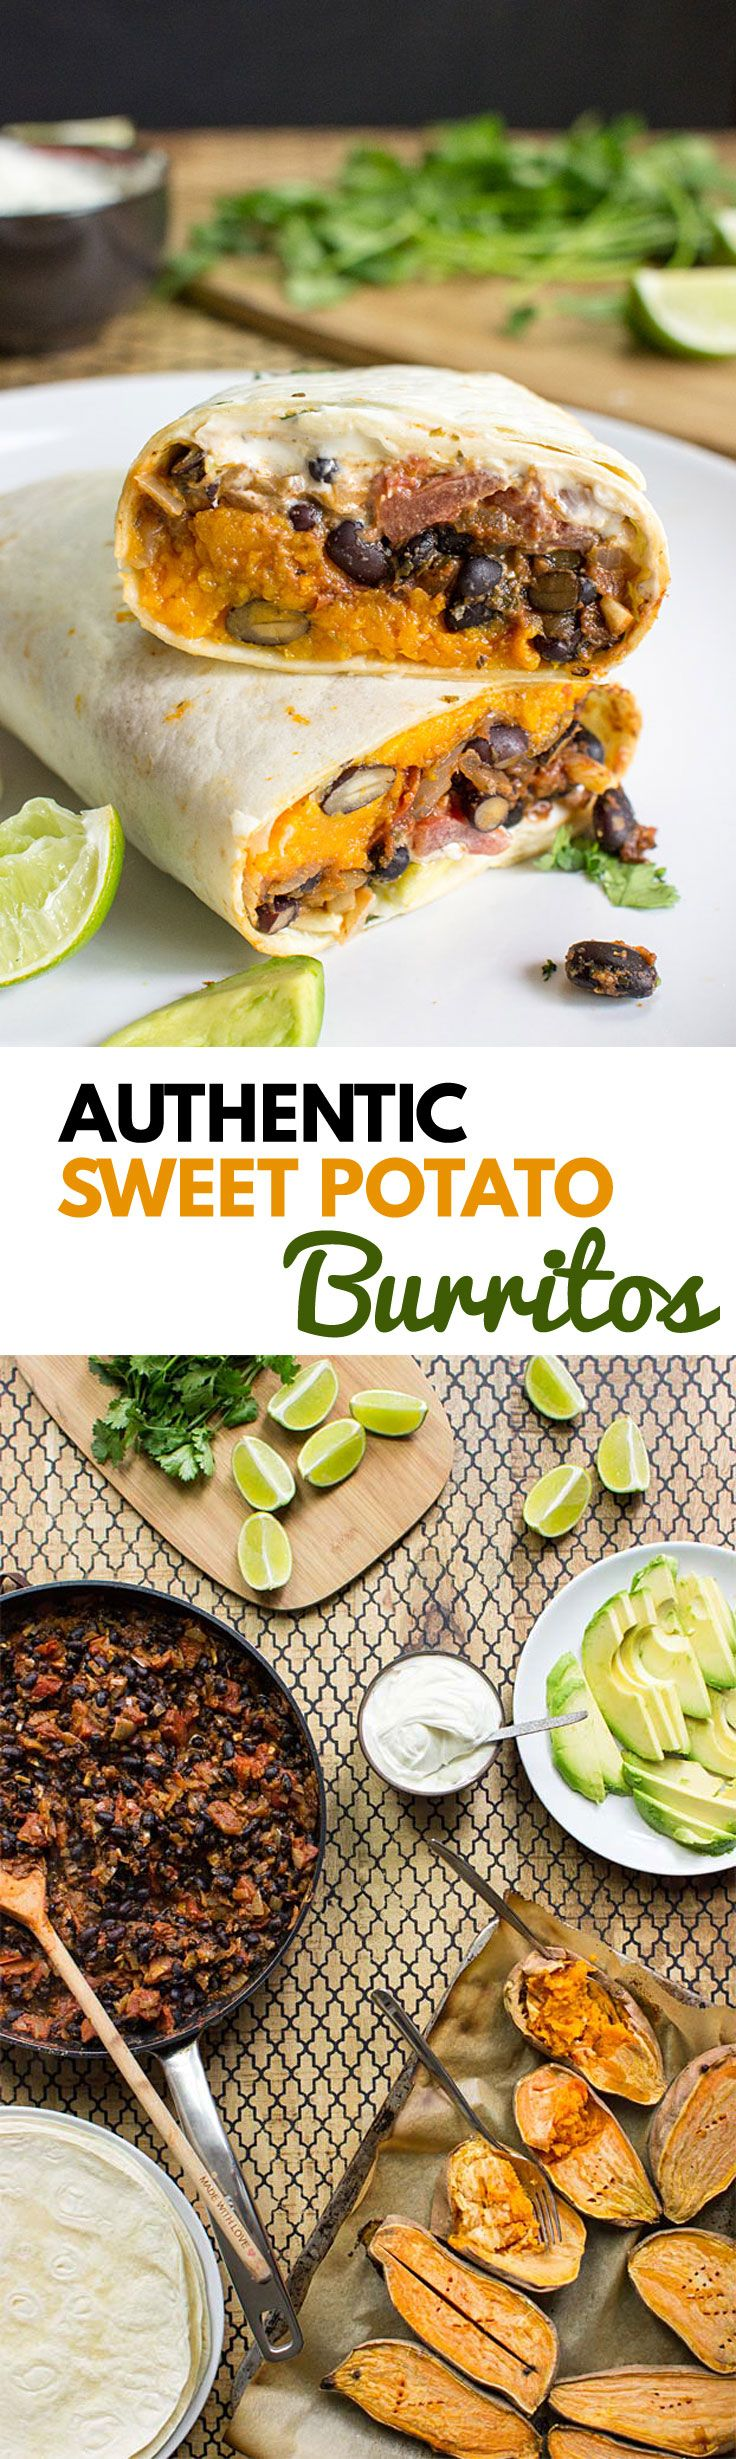 Sweet Potato Burritos - bursting with Mexican flair and tantalising flavours, this authentic recipe is easy to make for one or the whole big family! | hurrythefoodup.com